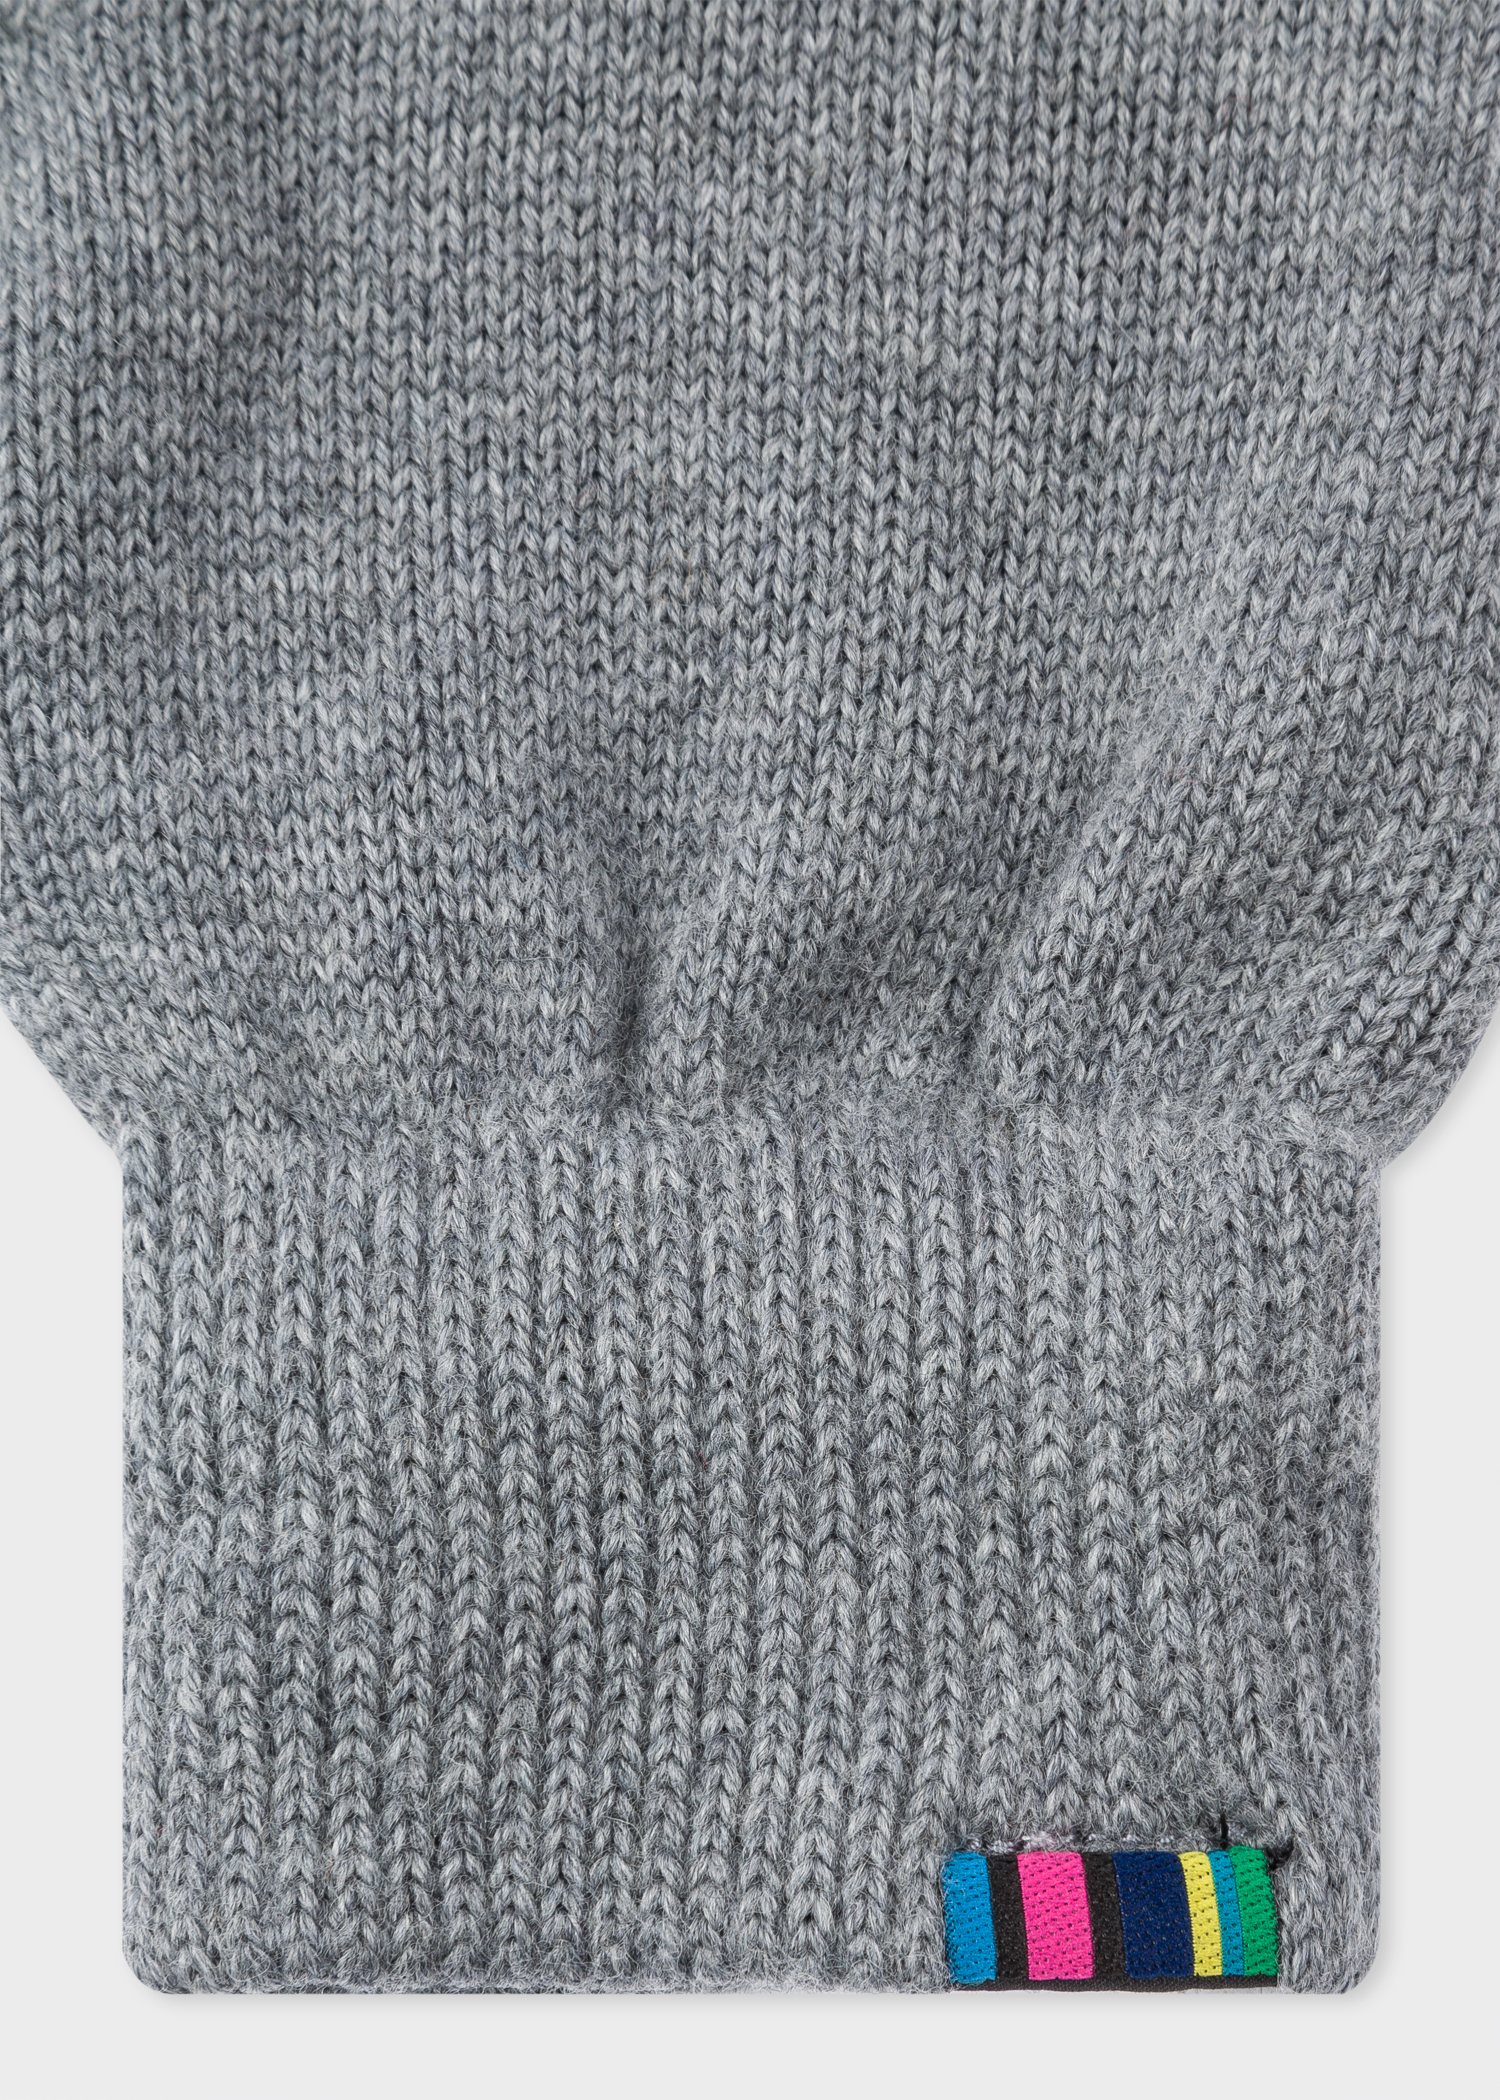 Detail view - Men s Grey Lambswool Gloves Paul Smith 88cad656d65a